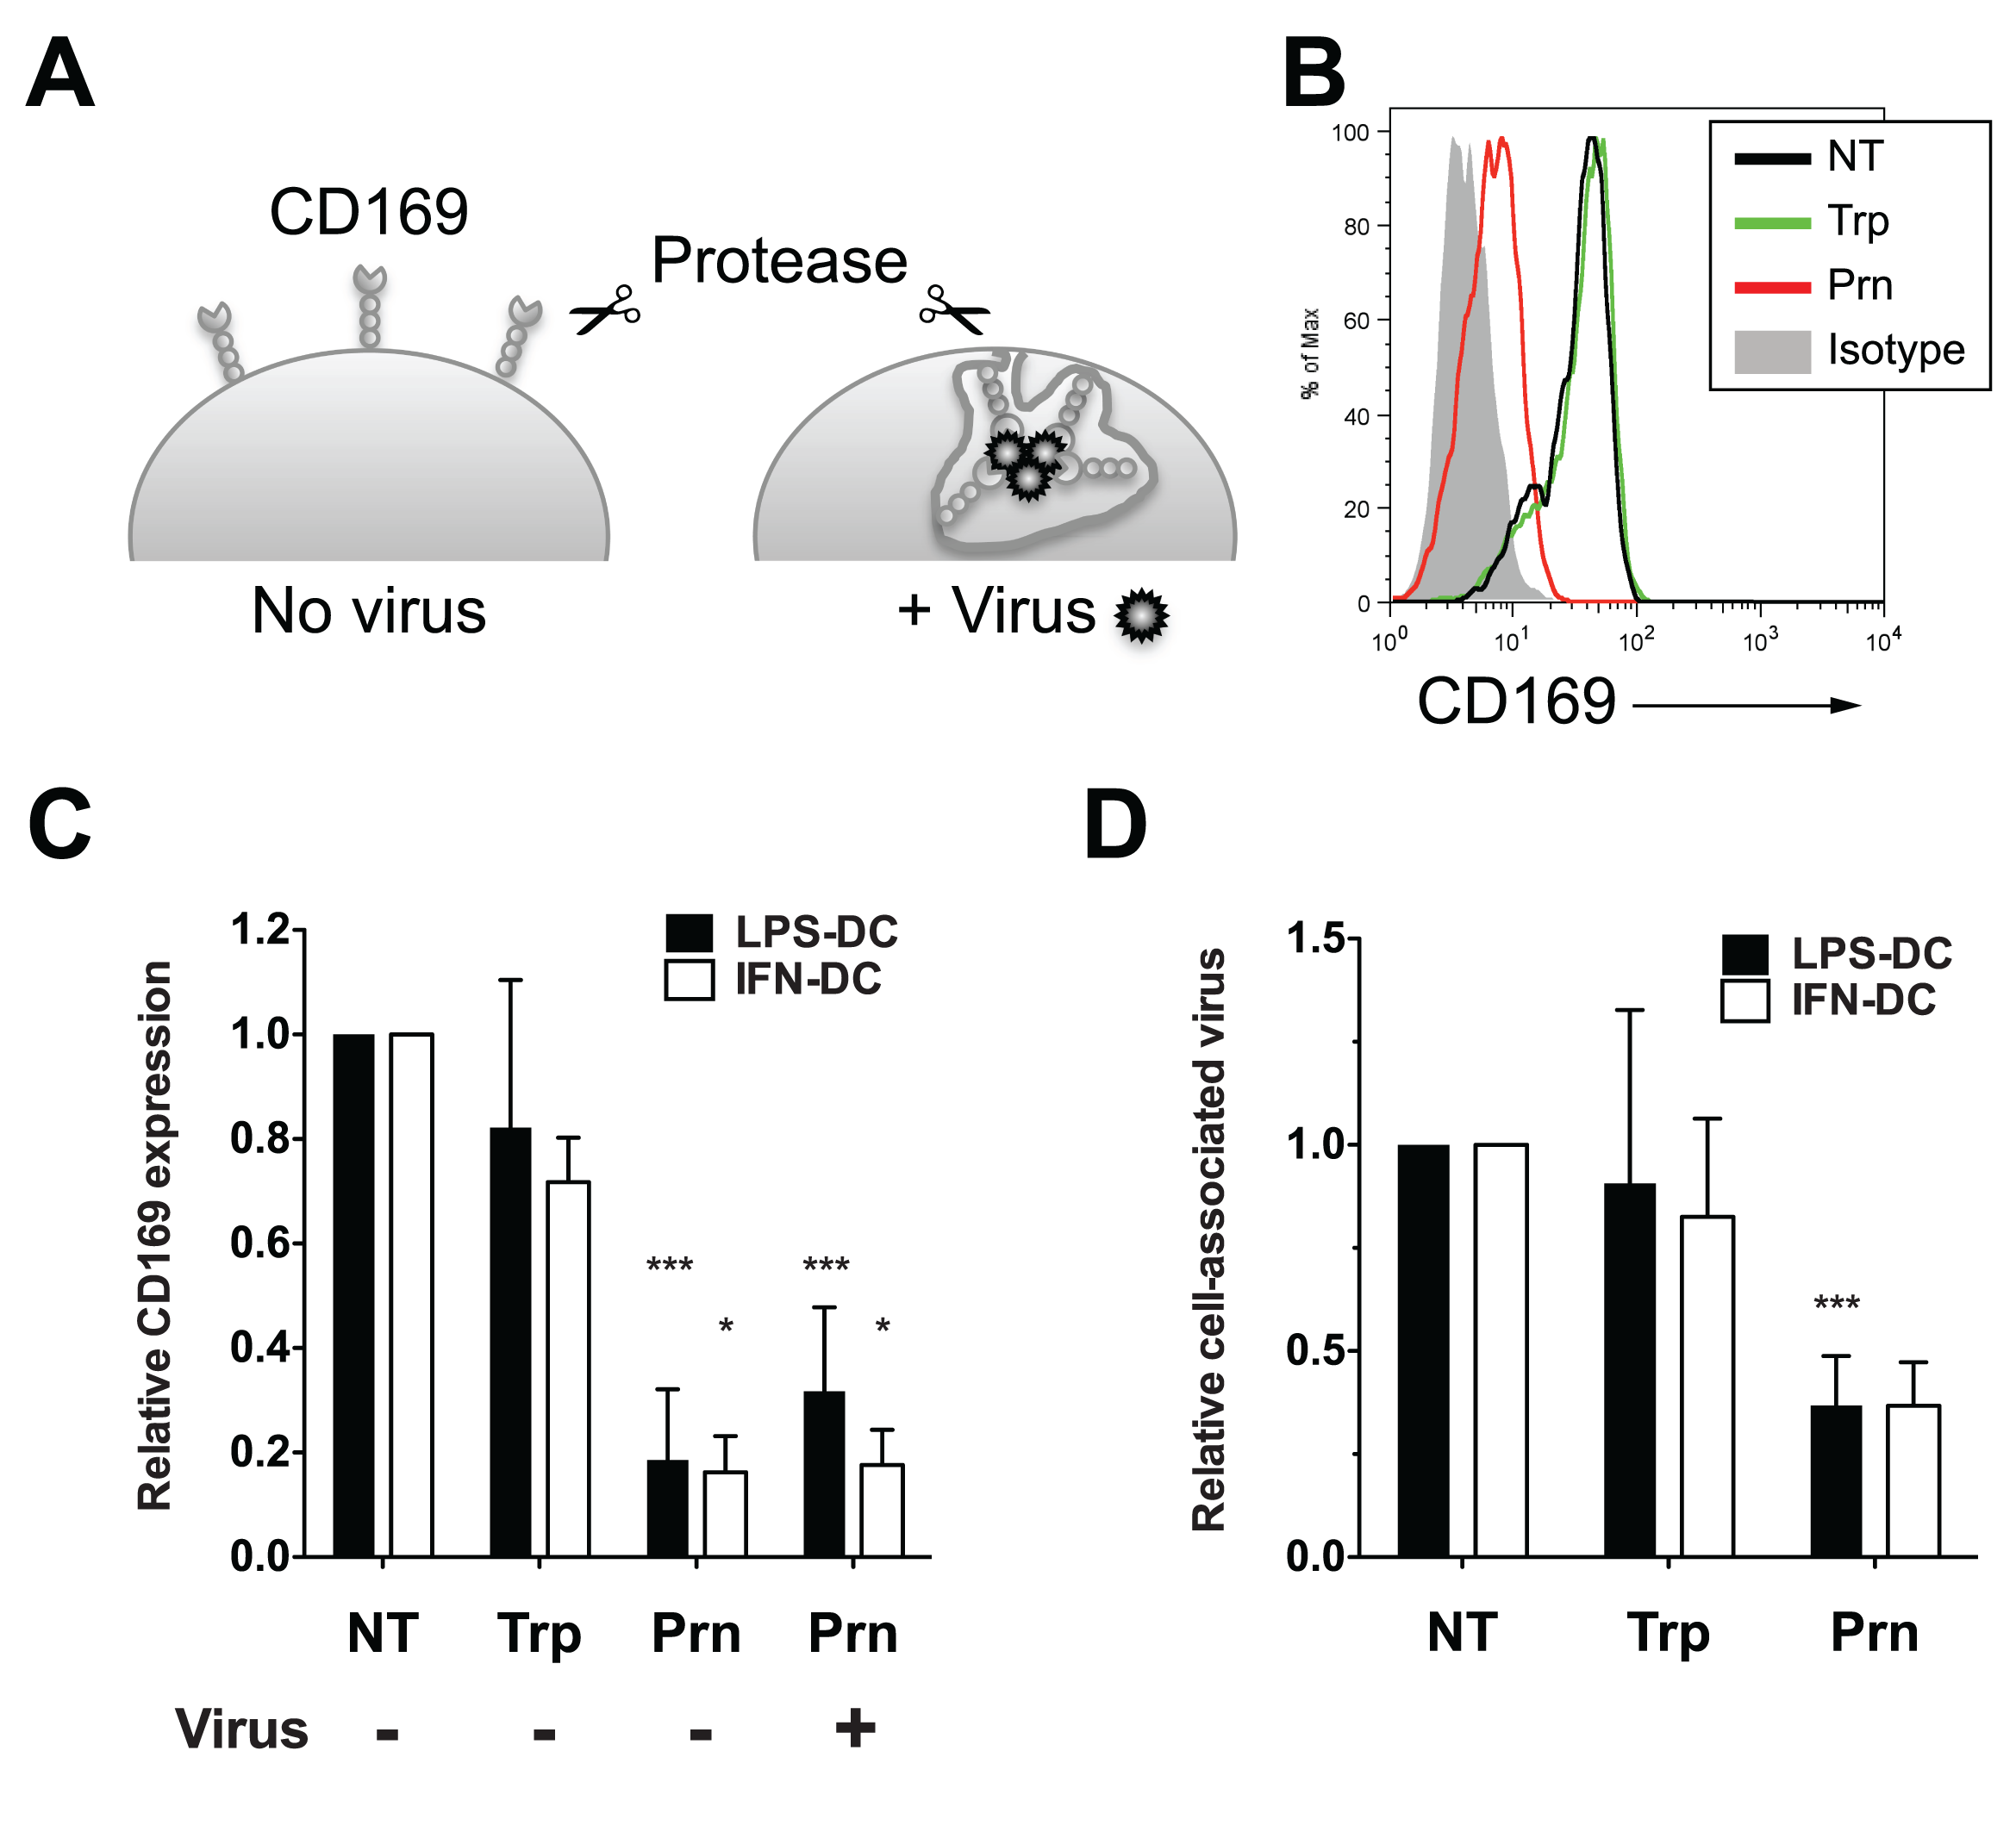 Virus particles localized within CD169<sup>+</sup> VCCs in mature DCs are susceptible to pronase.